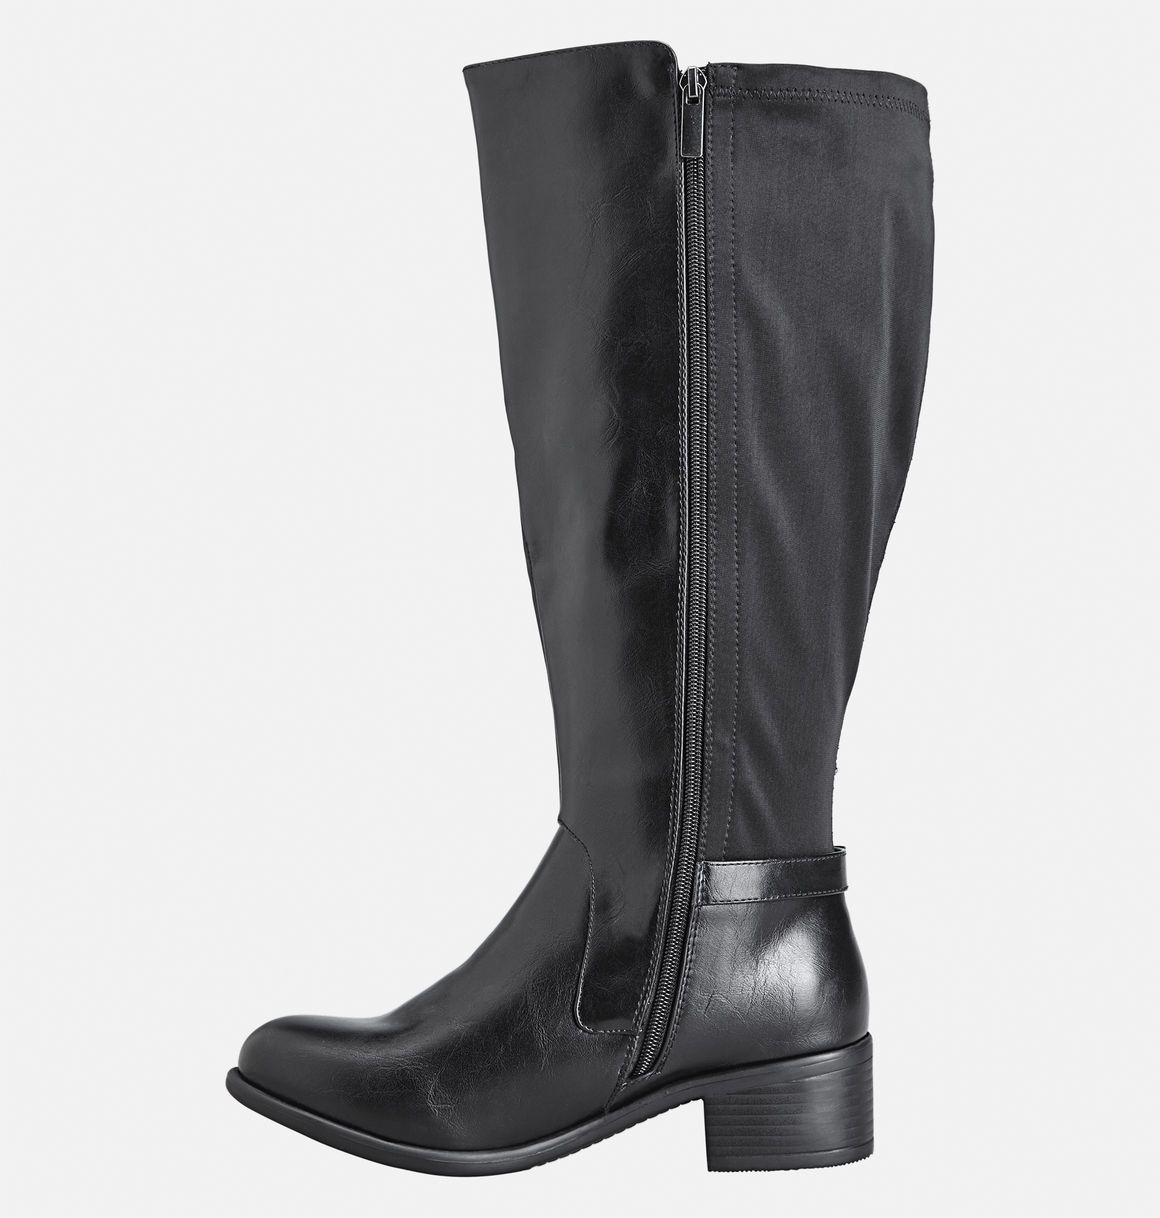 Have wider calves? Looking for boots that fit? Try our extra wide boots with a stretch calf for added fit like the Thea Nylon Back Tall Boot available online at avenue.com. Avenue Store